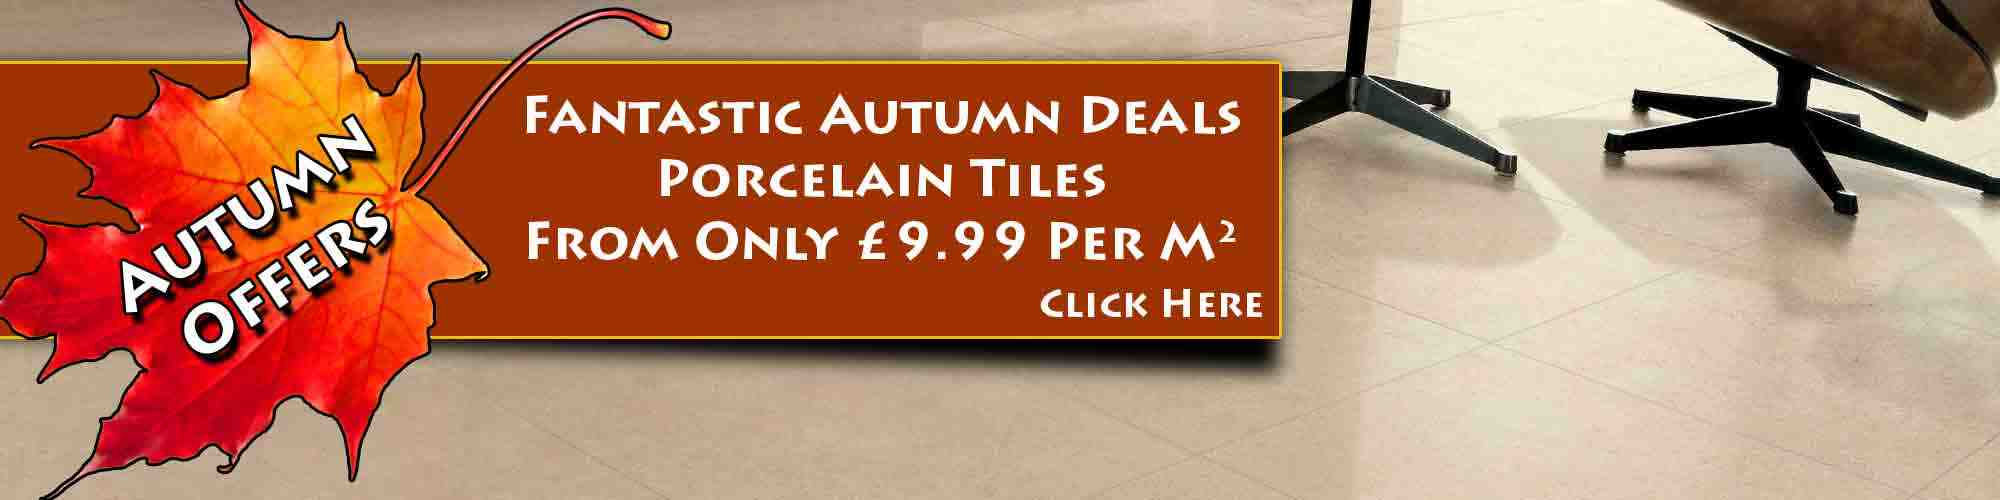 September Special Offers on Porcelain Tiles This Autumn